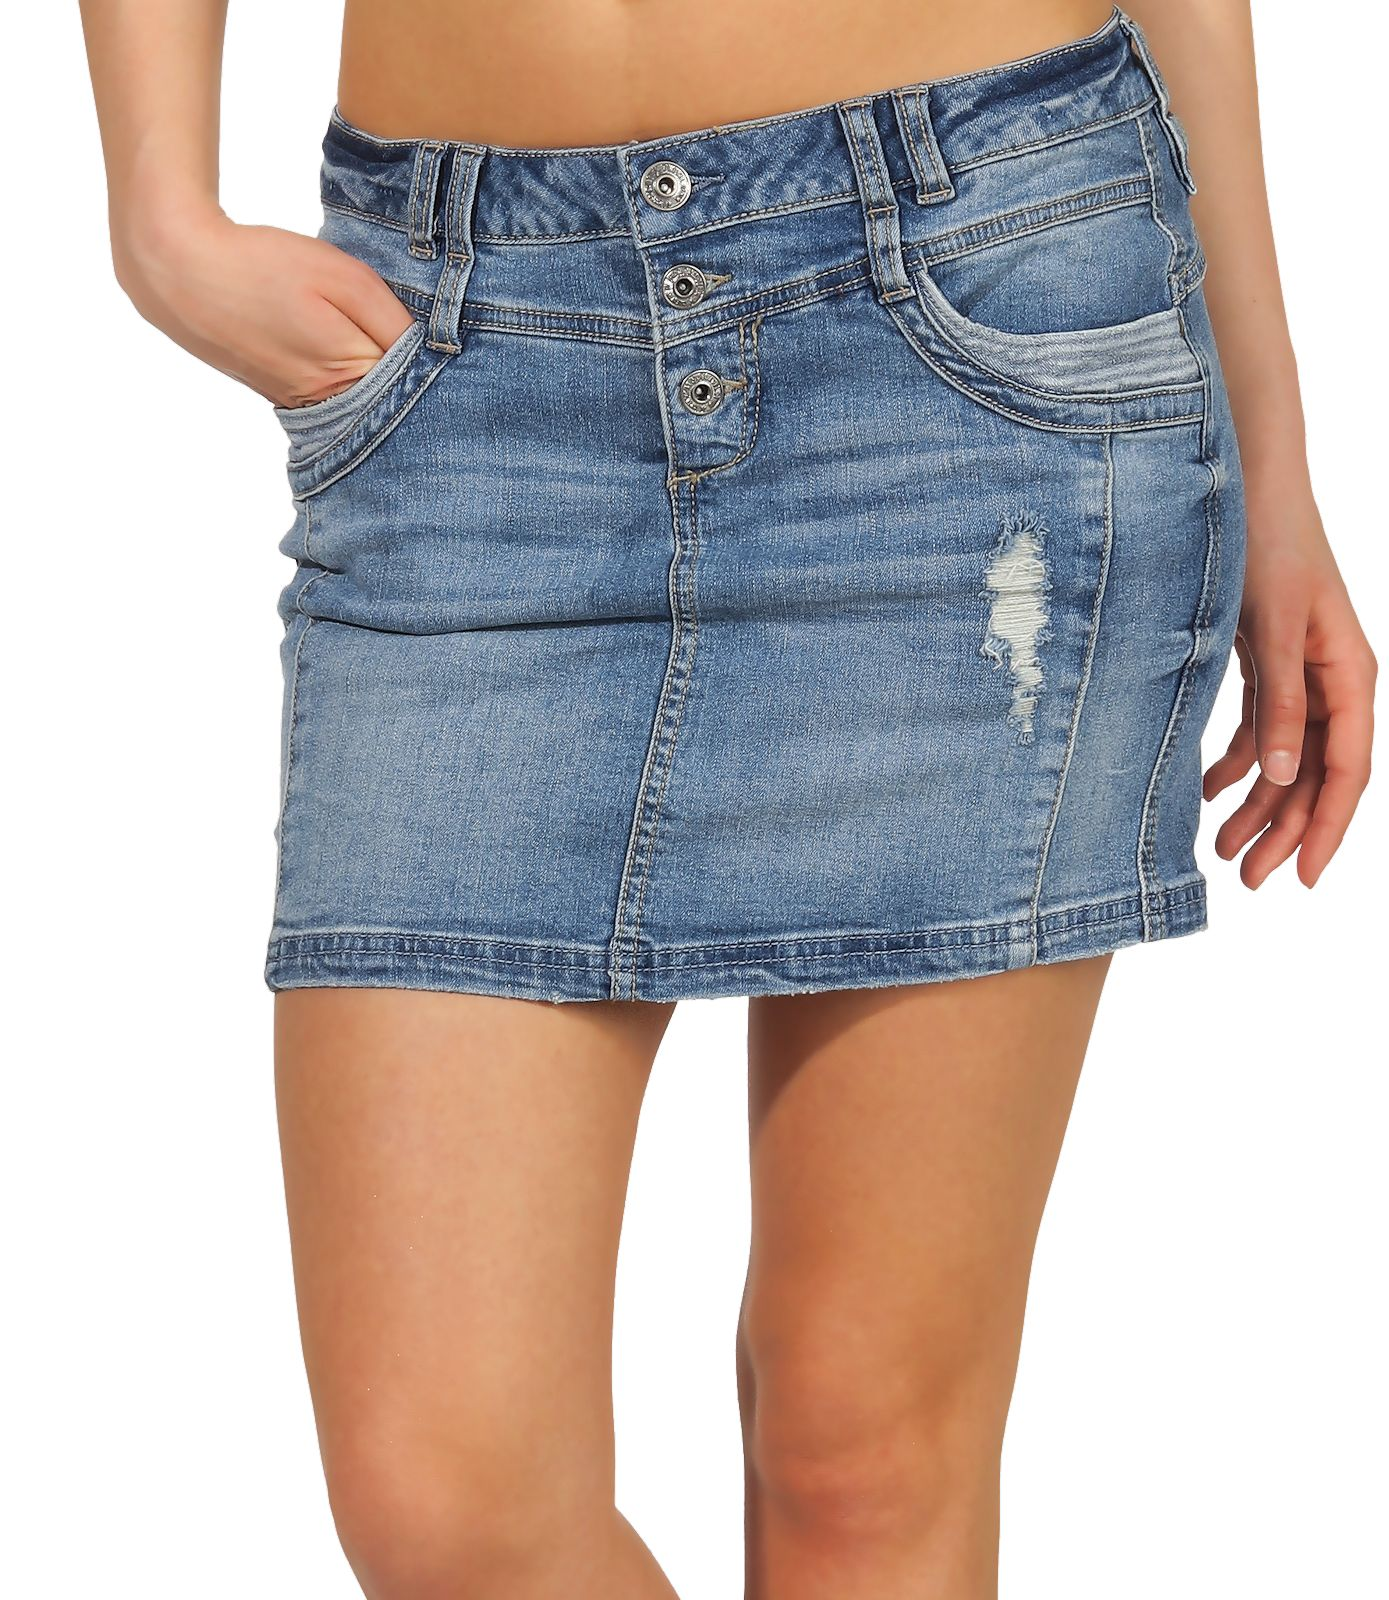 Only Damen Jeansrock Bleistiftrock Stretch Denim Kurz Minirock Damenrock SALE /%